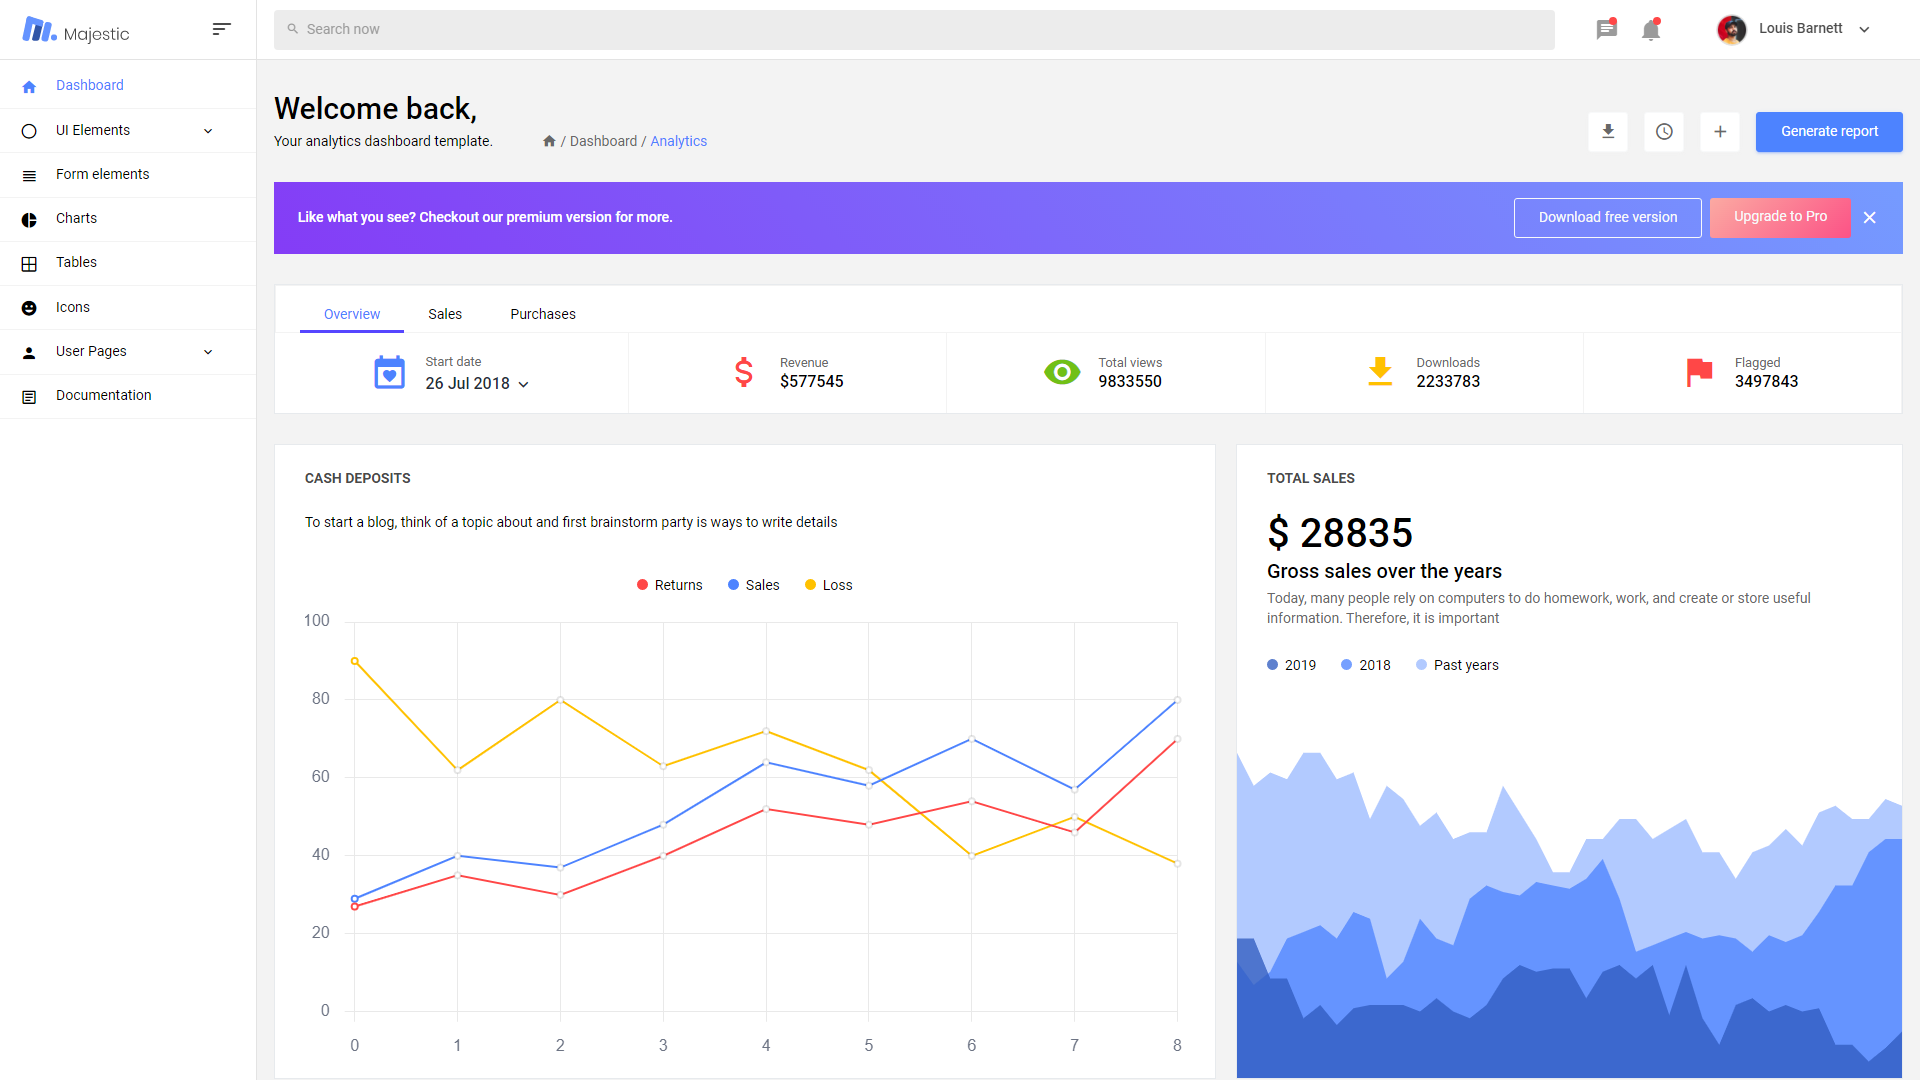 Majestic Bootstrap template